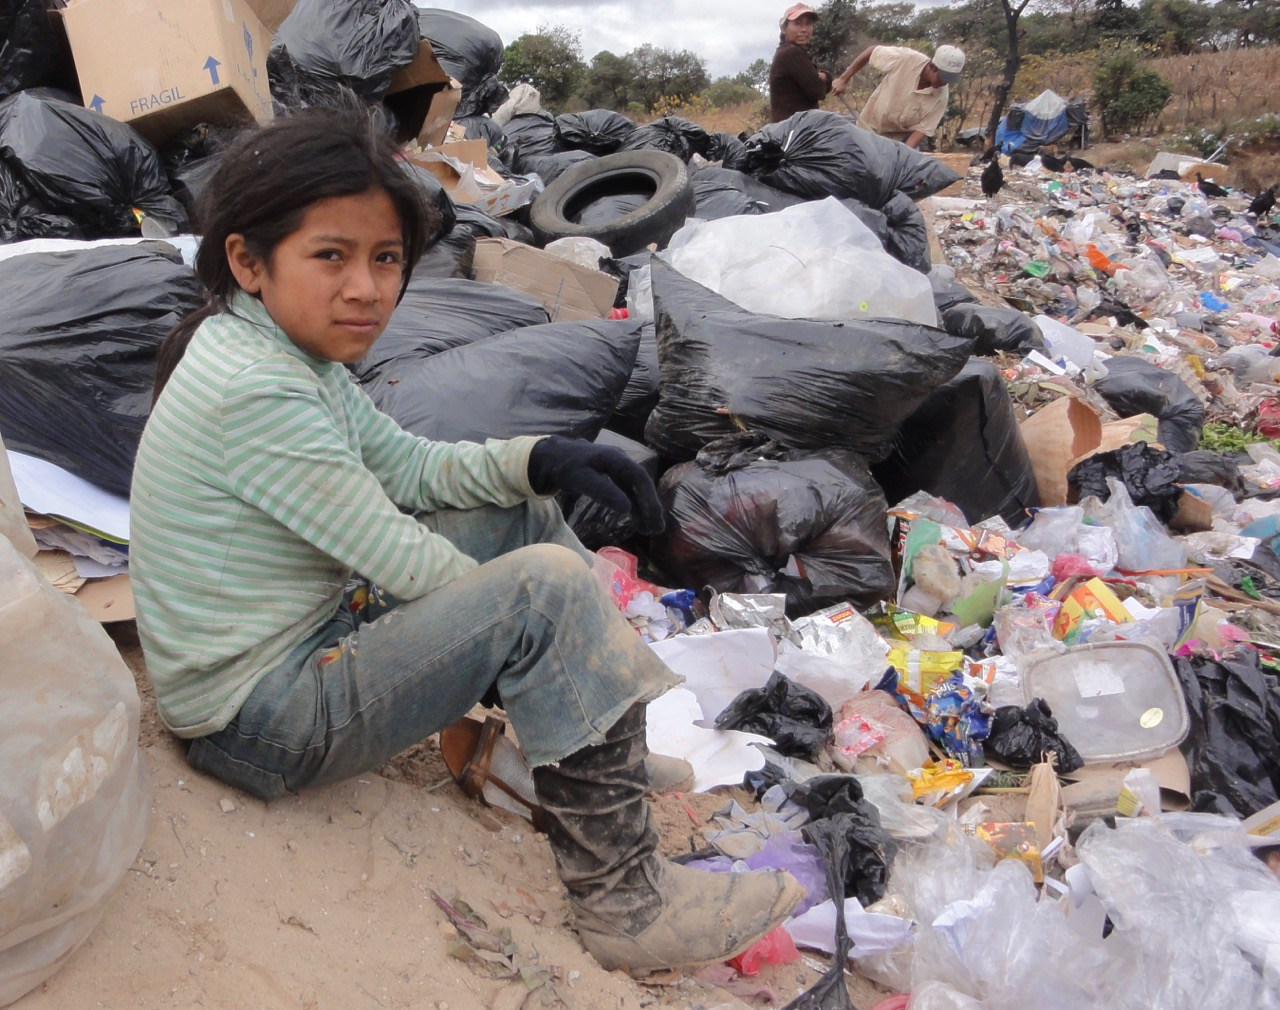 How was Guatemala, part 3: life in the dump